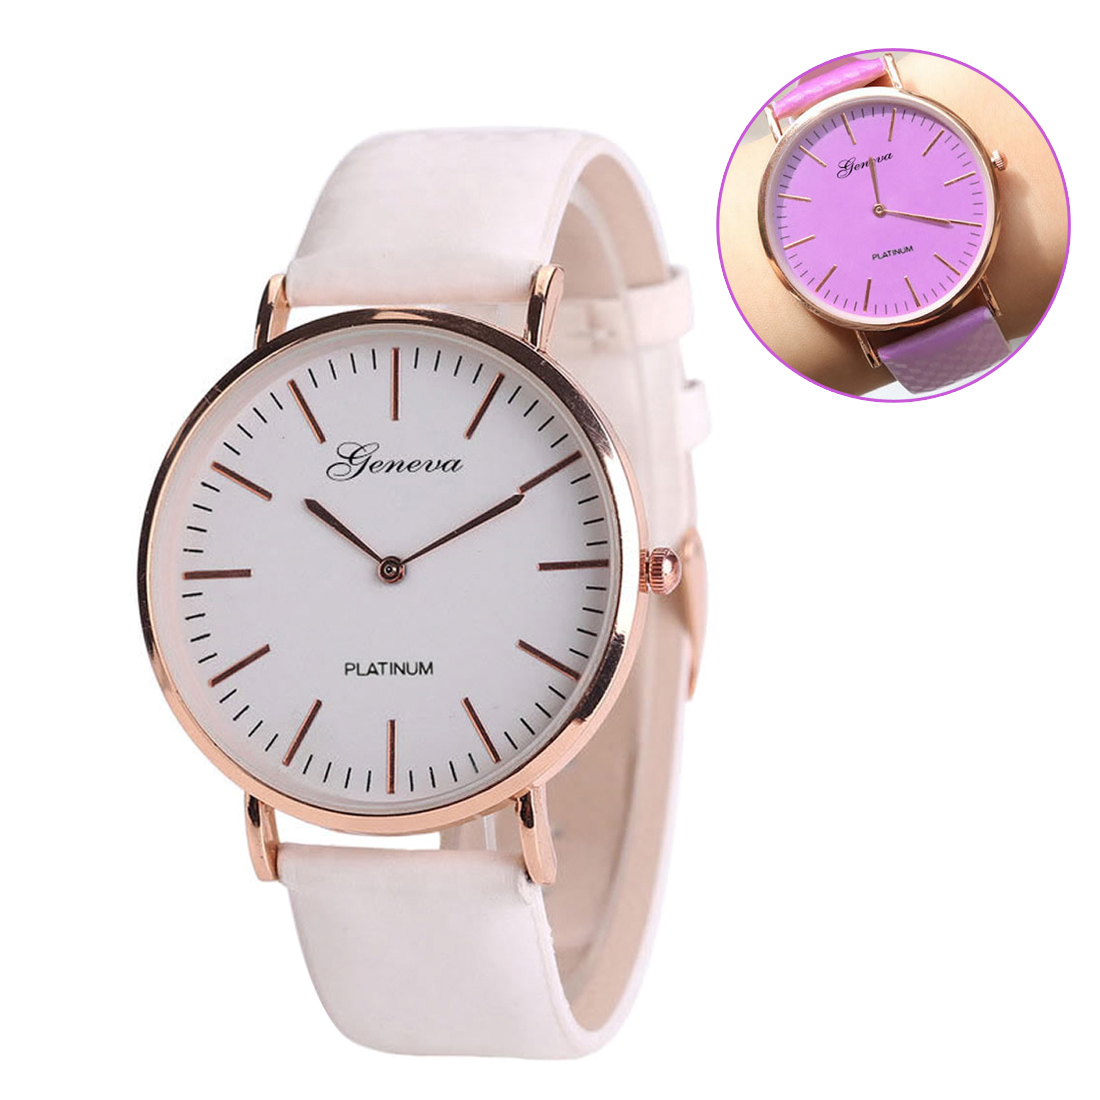 Purple Women Quartz Watches Leather Relogio Feminino Wristwatches New Fashion Watch Simple Style Female Clock Gift Elegant Hour rigardu fashion female wrist watch lovers gift leather band alloy case wristwatch women lady quartz watch relogio feminino 25